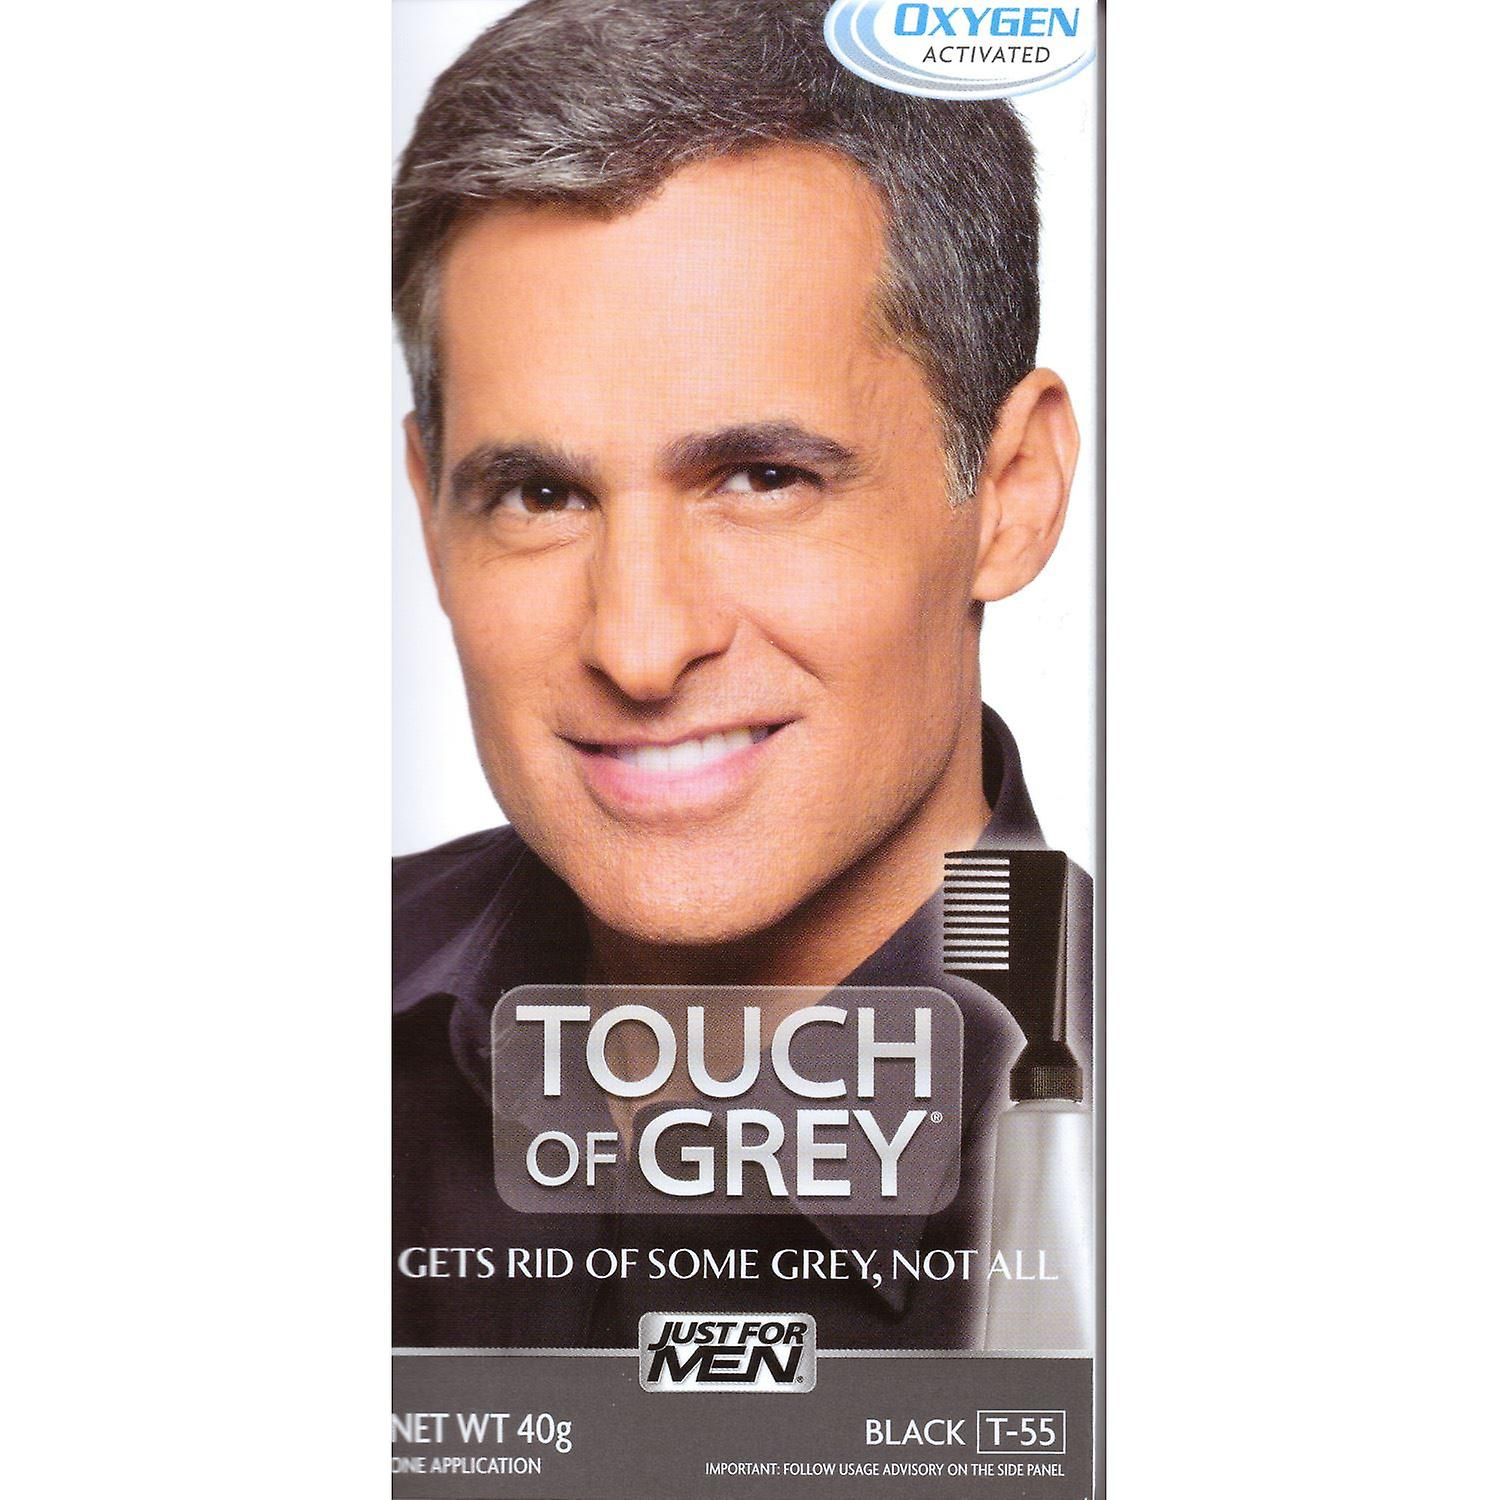 Touch Of Grey Mens Hair Treatment  - Black Grey T55